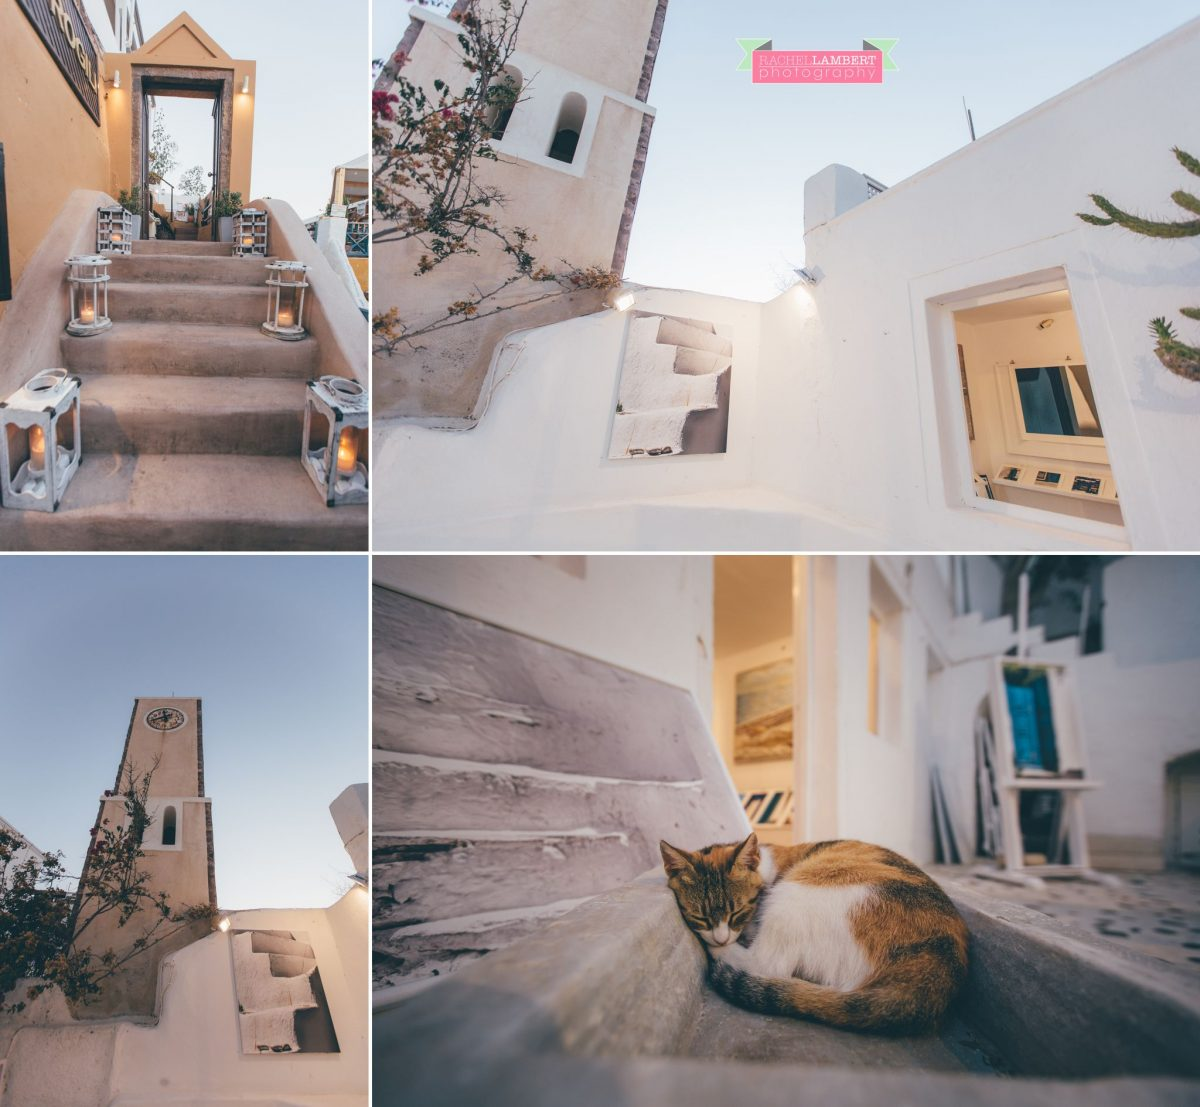 rachel_lambert_photography_santorini_greece_pre-wedding_shoot_engagement_rach_matt_ 33